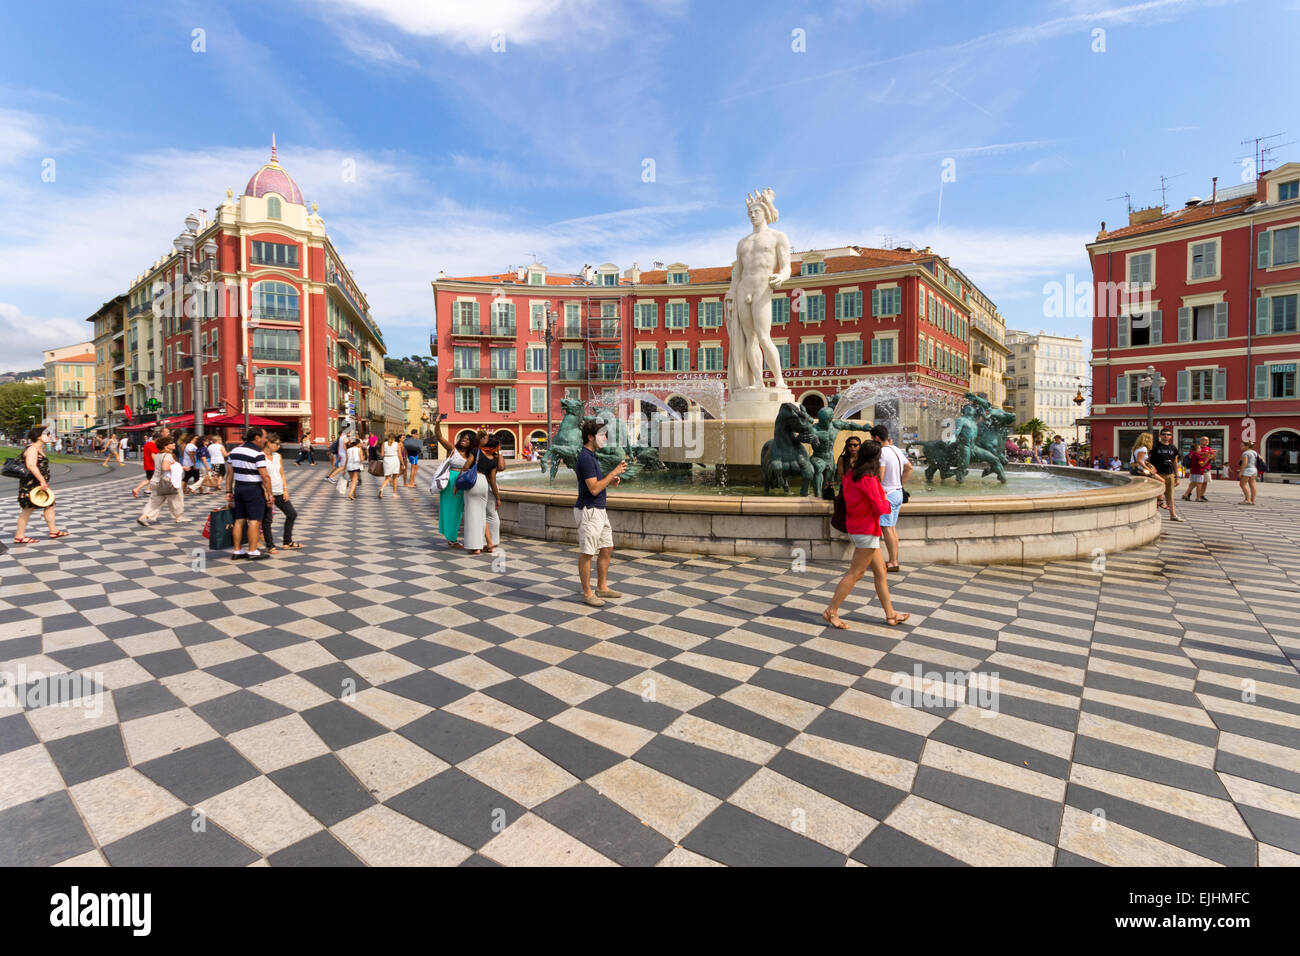 France, Cote d'Azur, Nice, Massena square - Stock Image